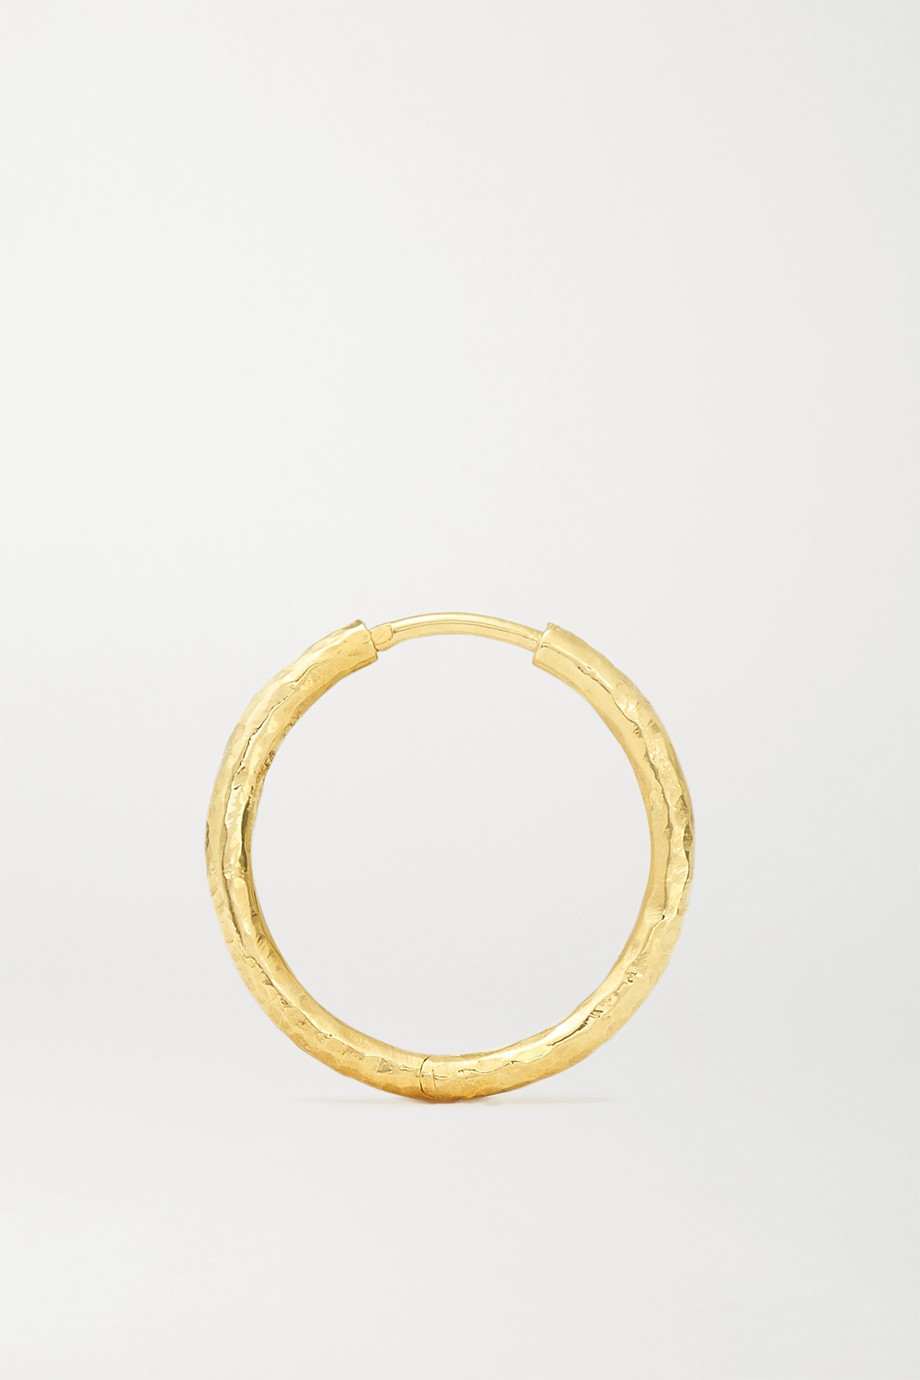 Octavia Elizabeth + NET SUSTAIN Gabby 18-karat gold hoop earrings